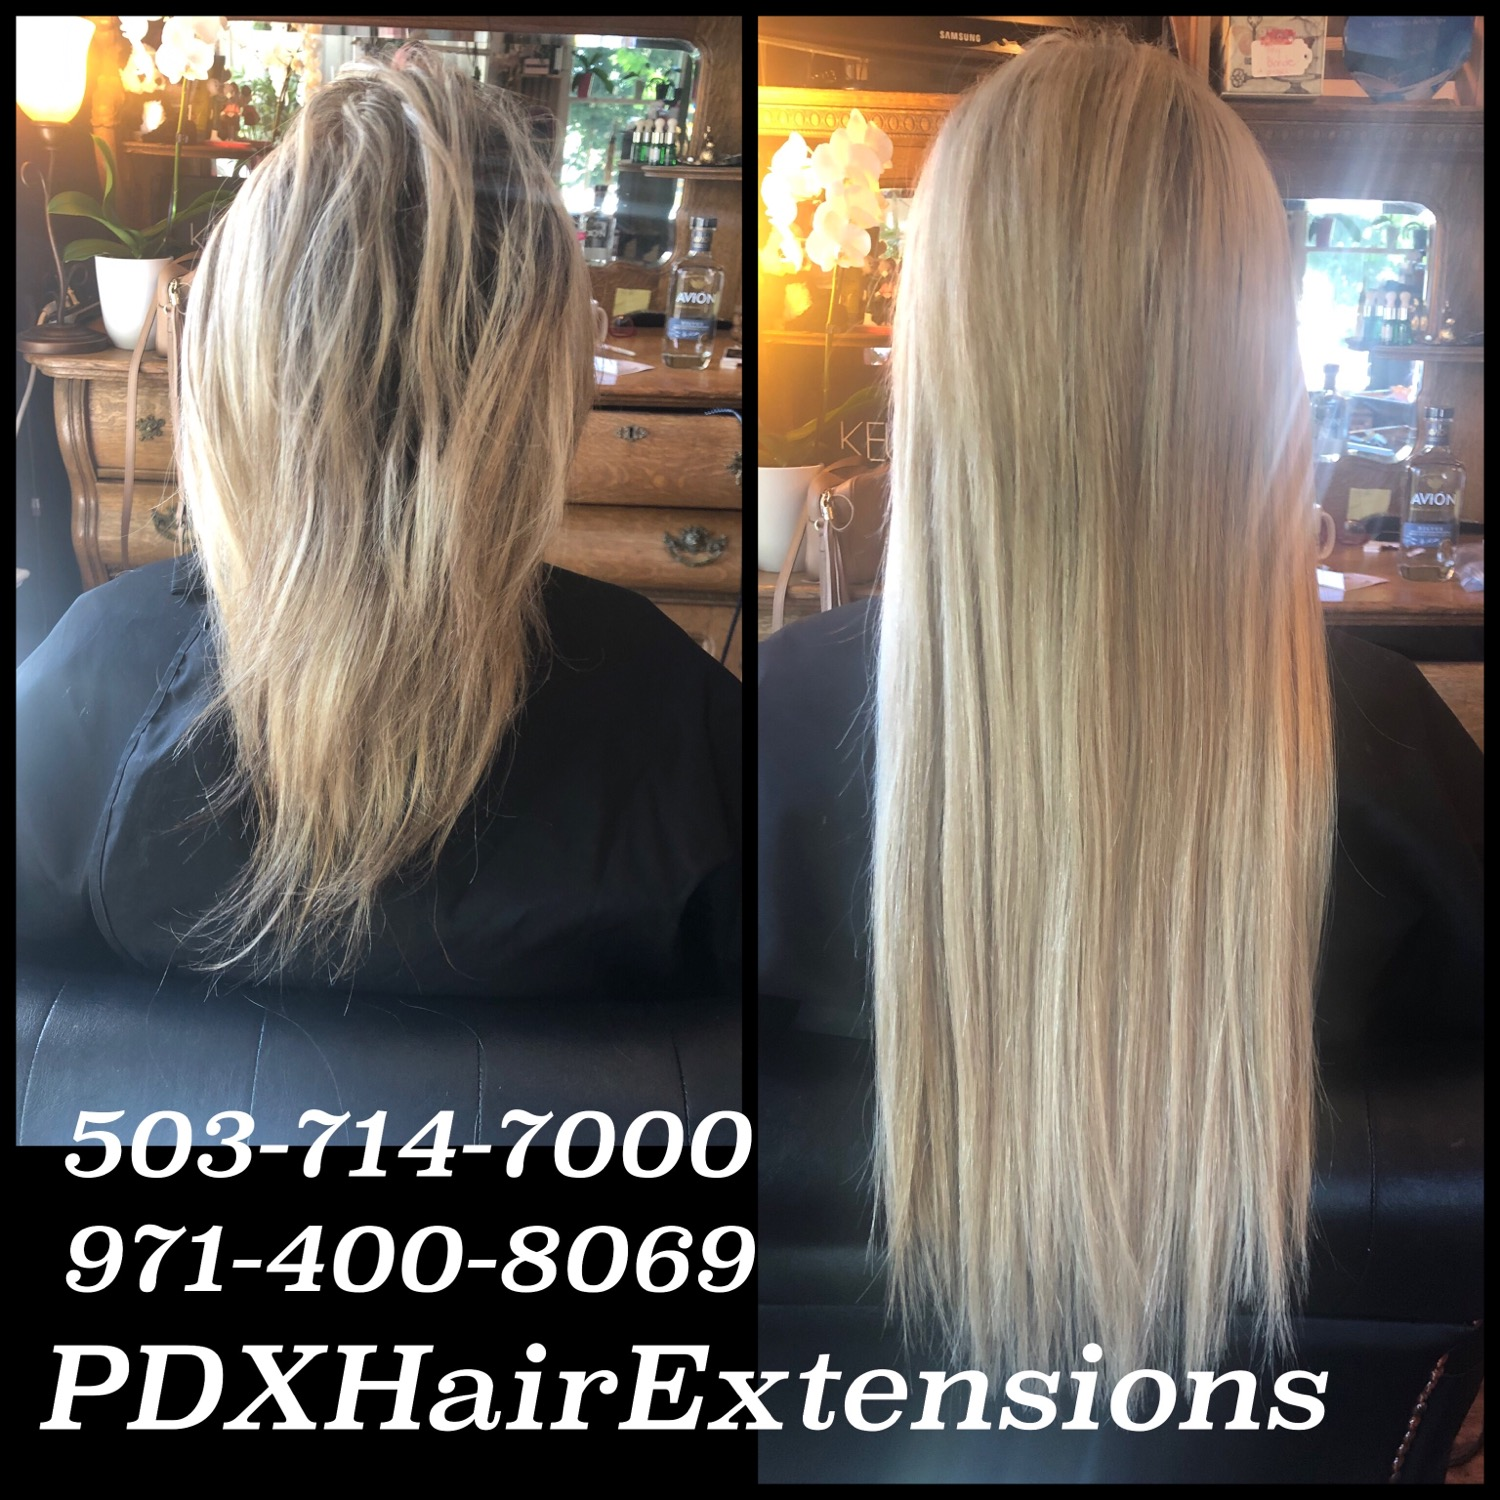 Before & After: Lt. Blonde Extension